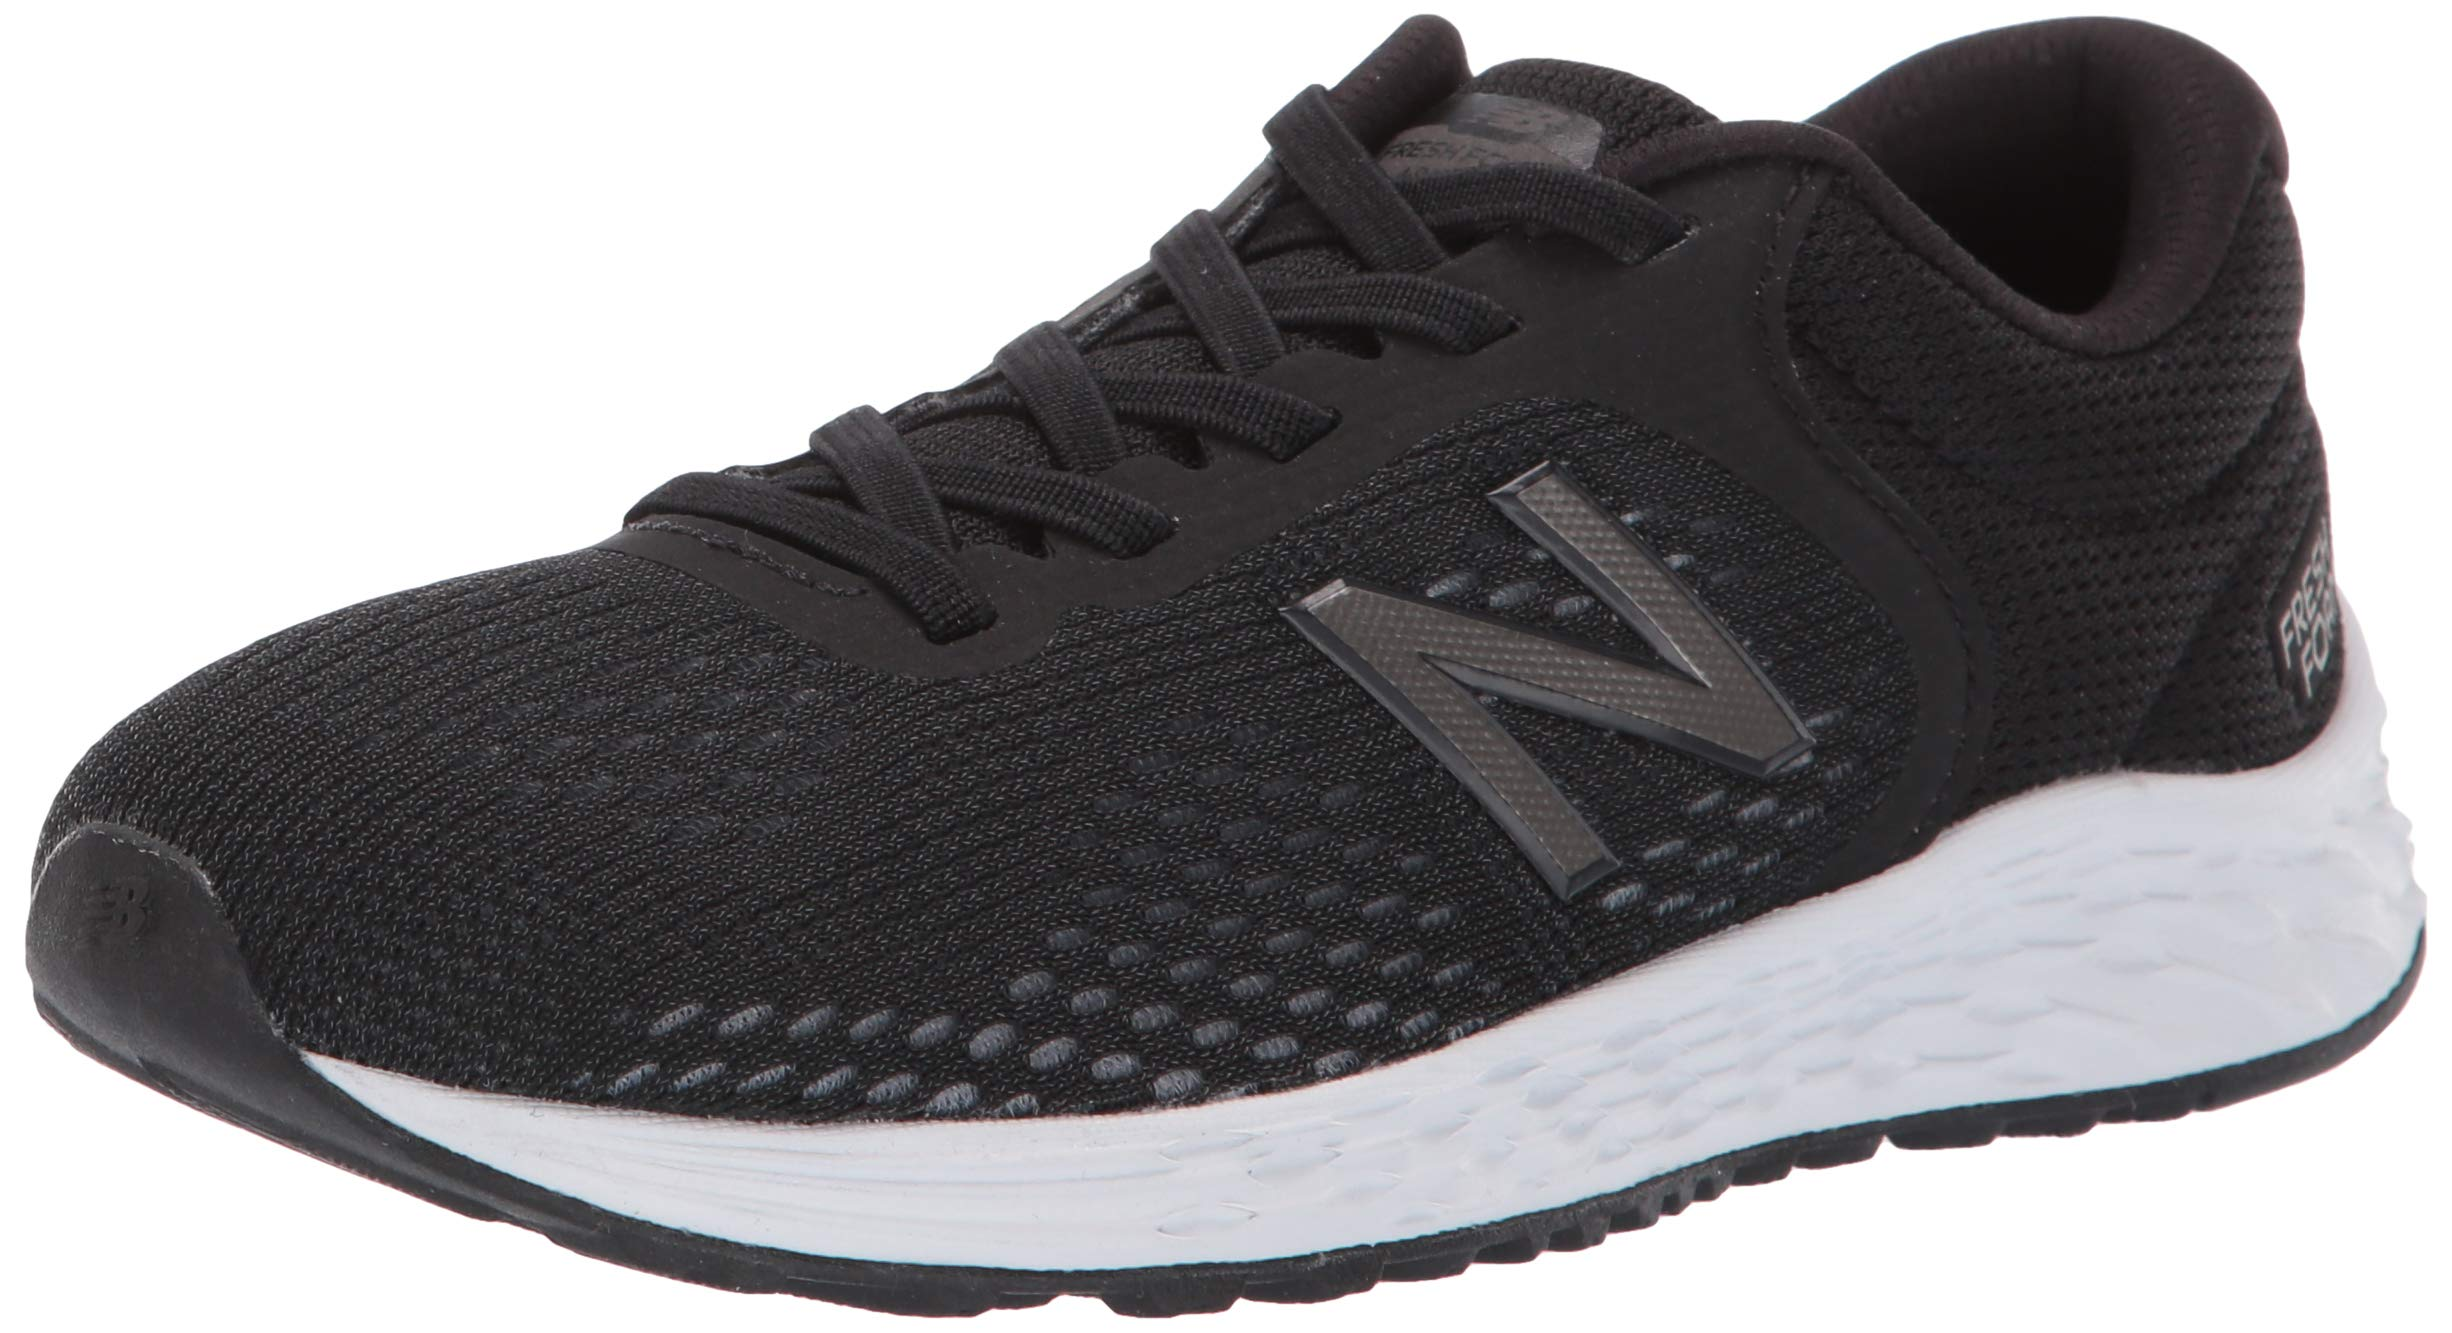 New Balance Boys' Arishi V2 Bungee Running Shoe Black/White 4 M US Big Kid